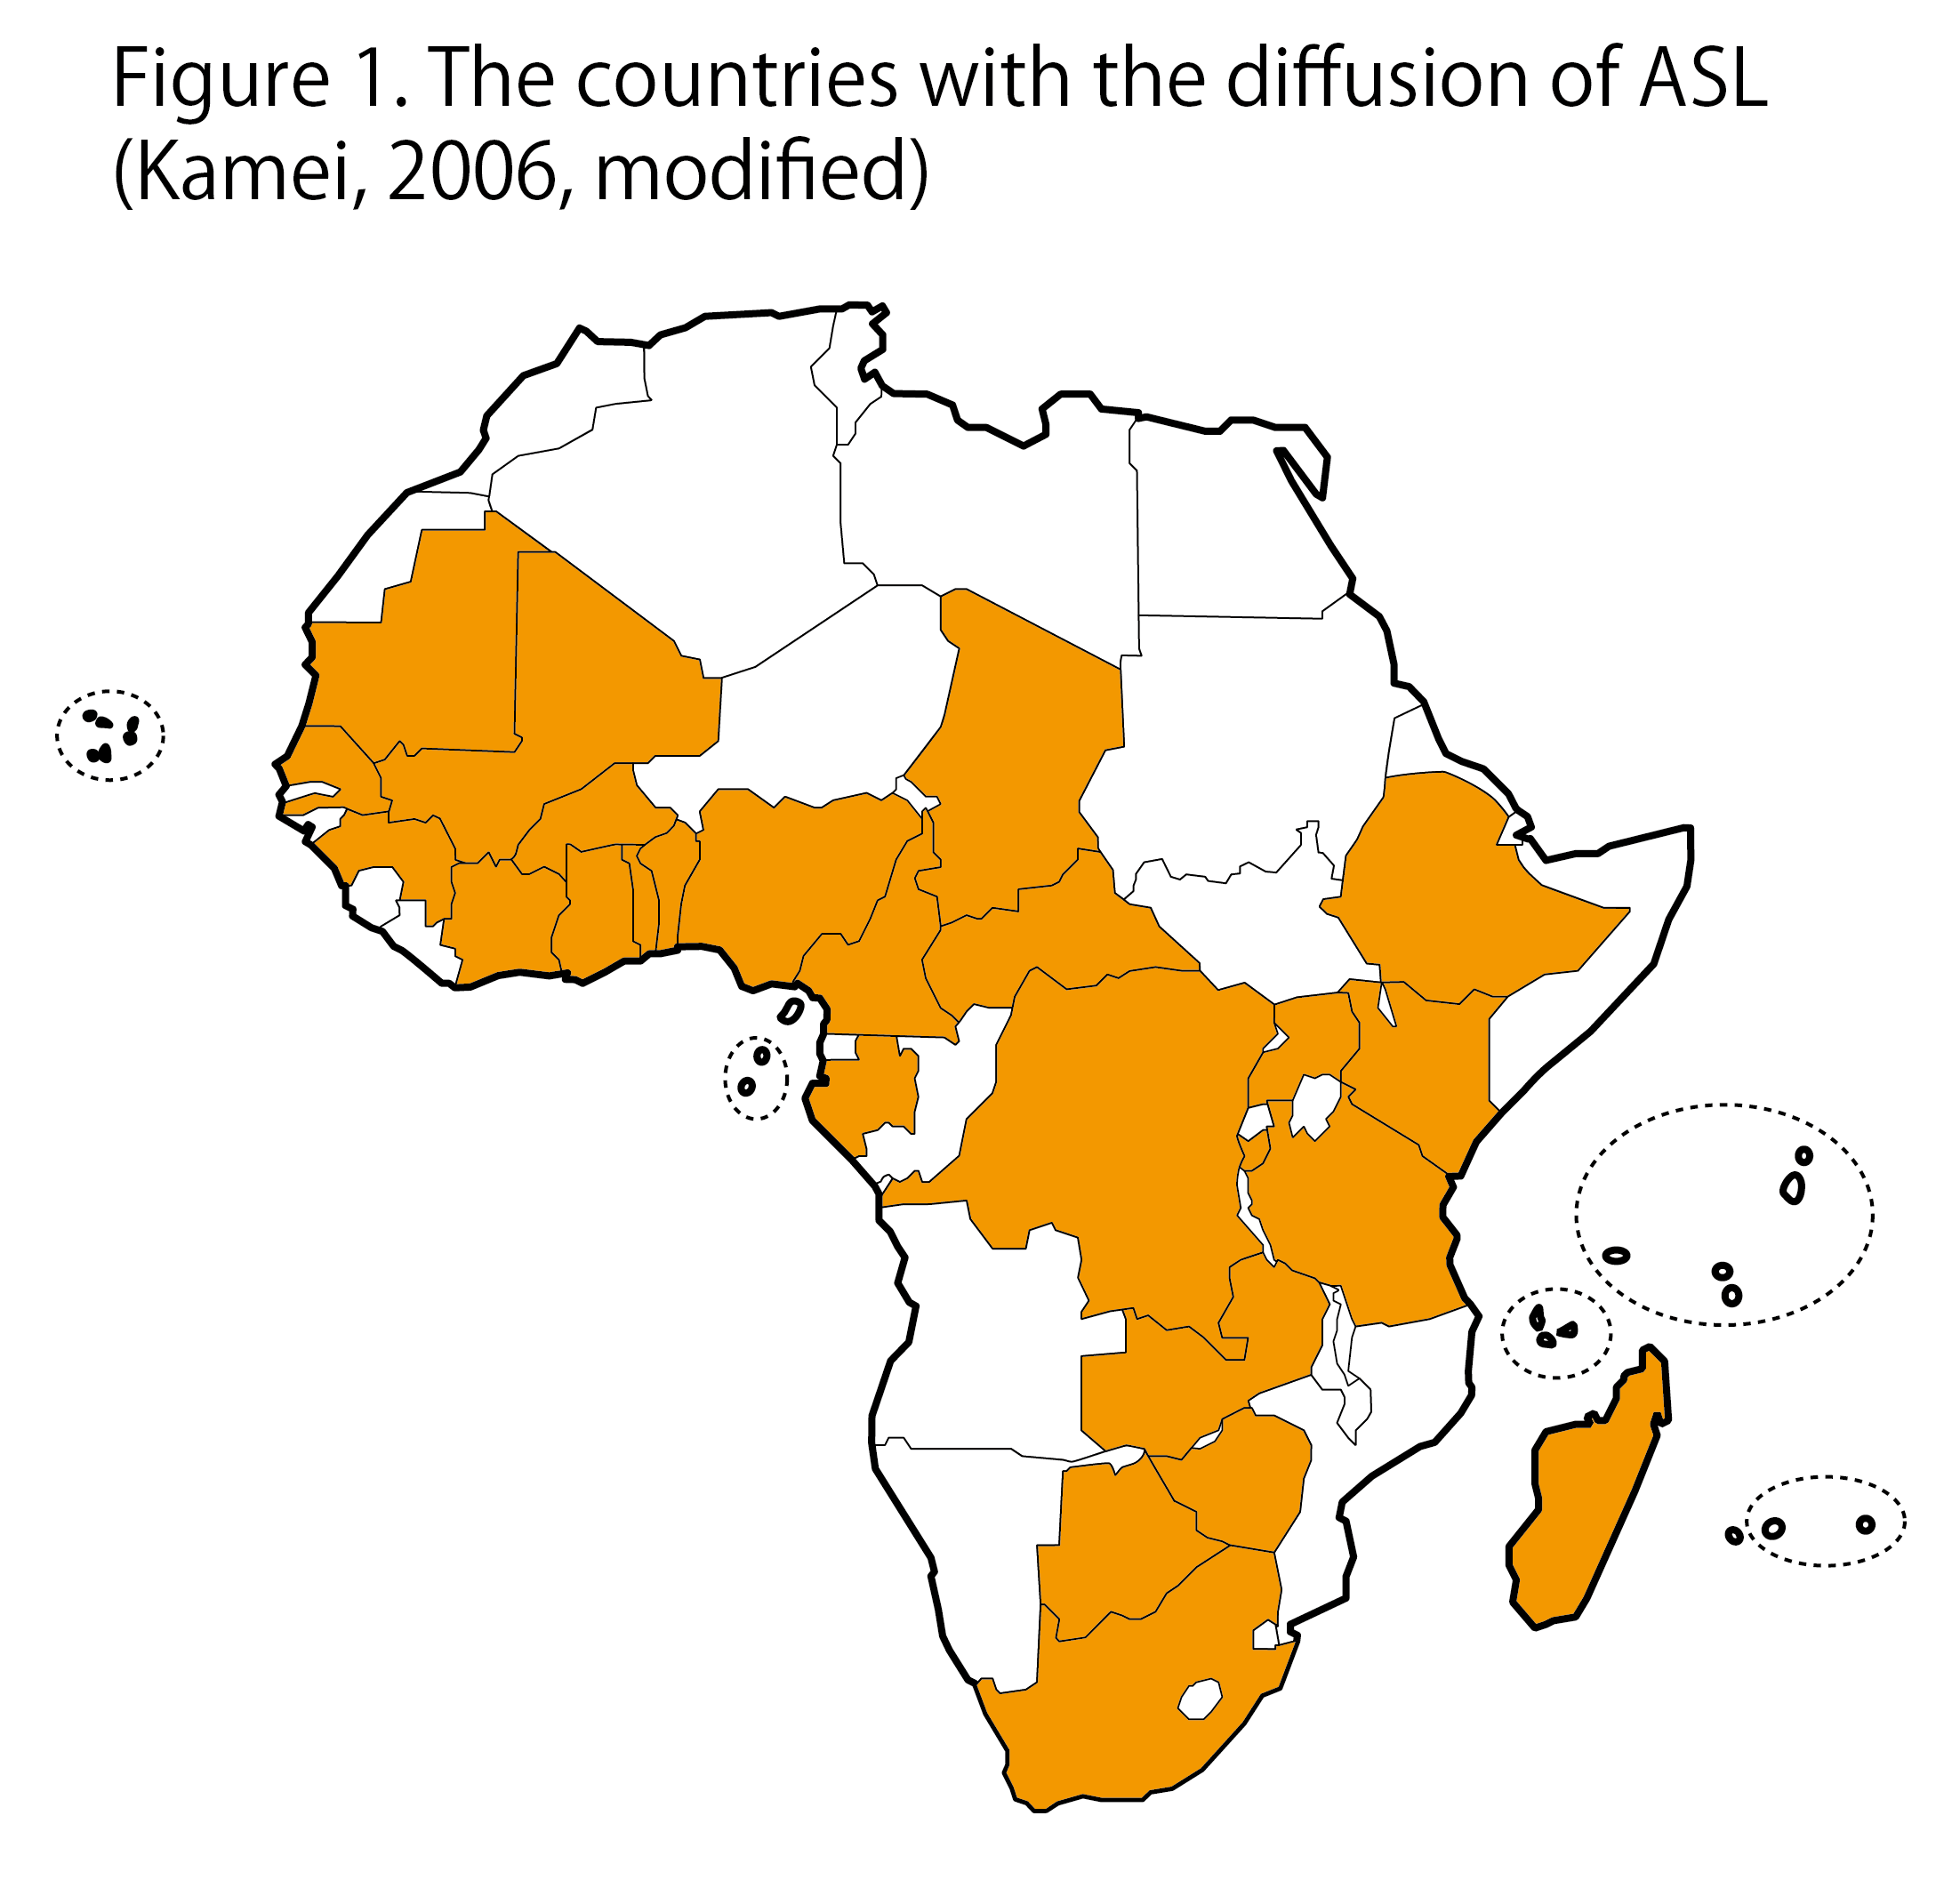 Nobutaka kamei through the comparison of these figures we can see that asl has spread to most french speaking african countries gumiabroncs Choice Image